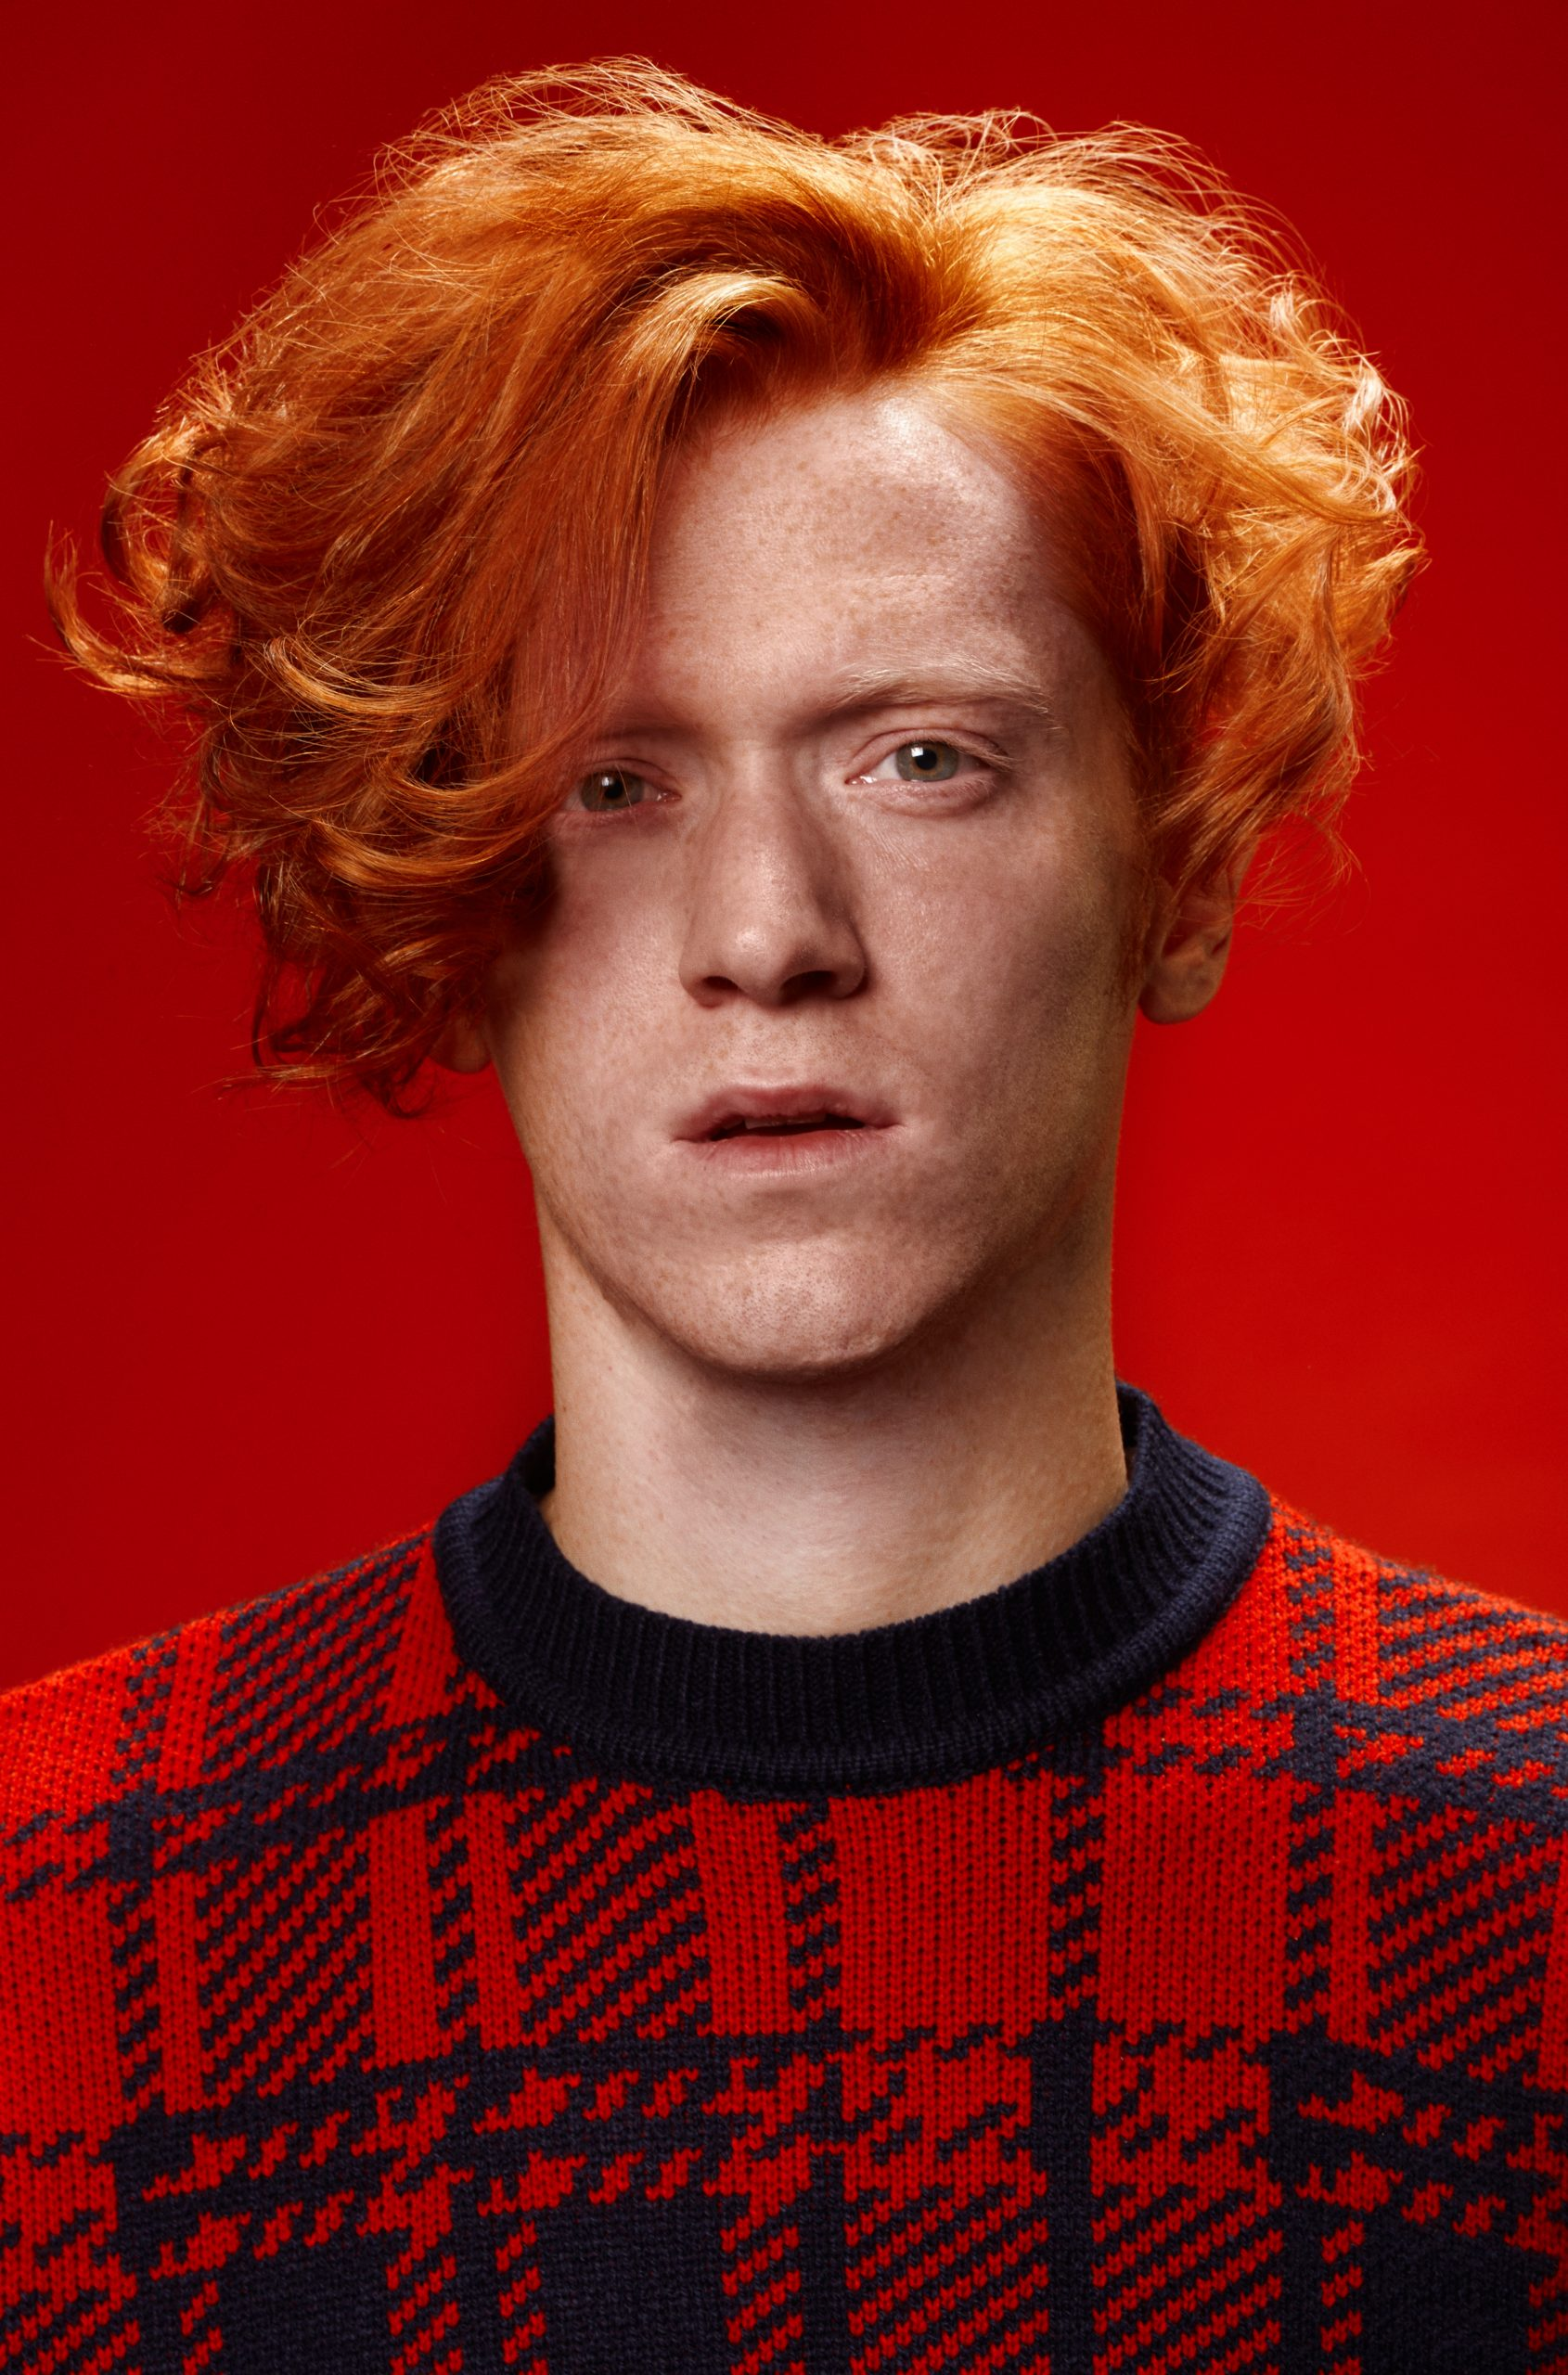 Ginger @The Barber Shop by Paco Lopez 3 scaled